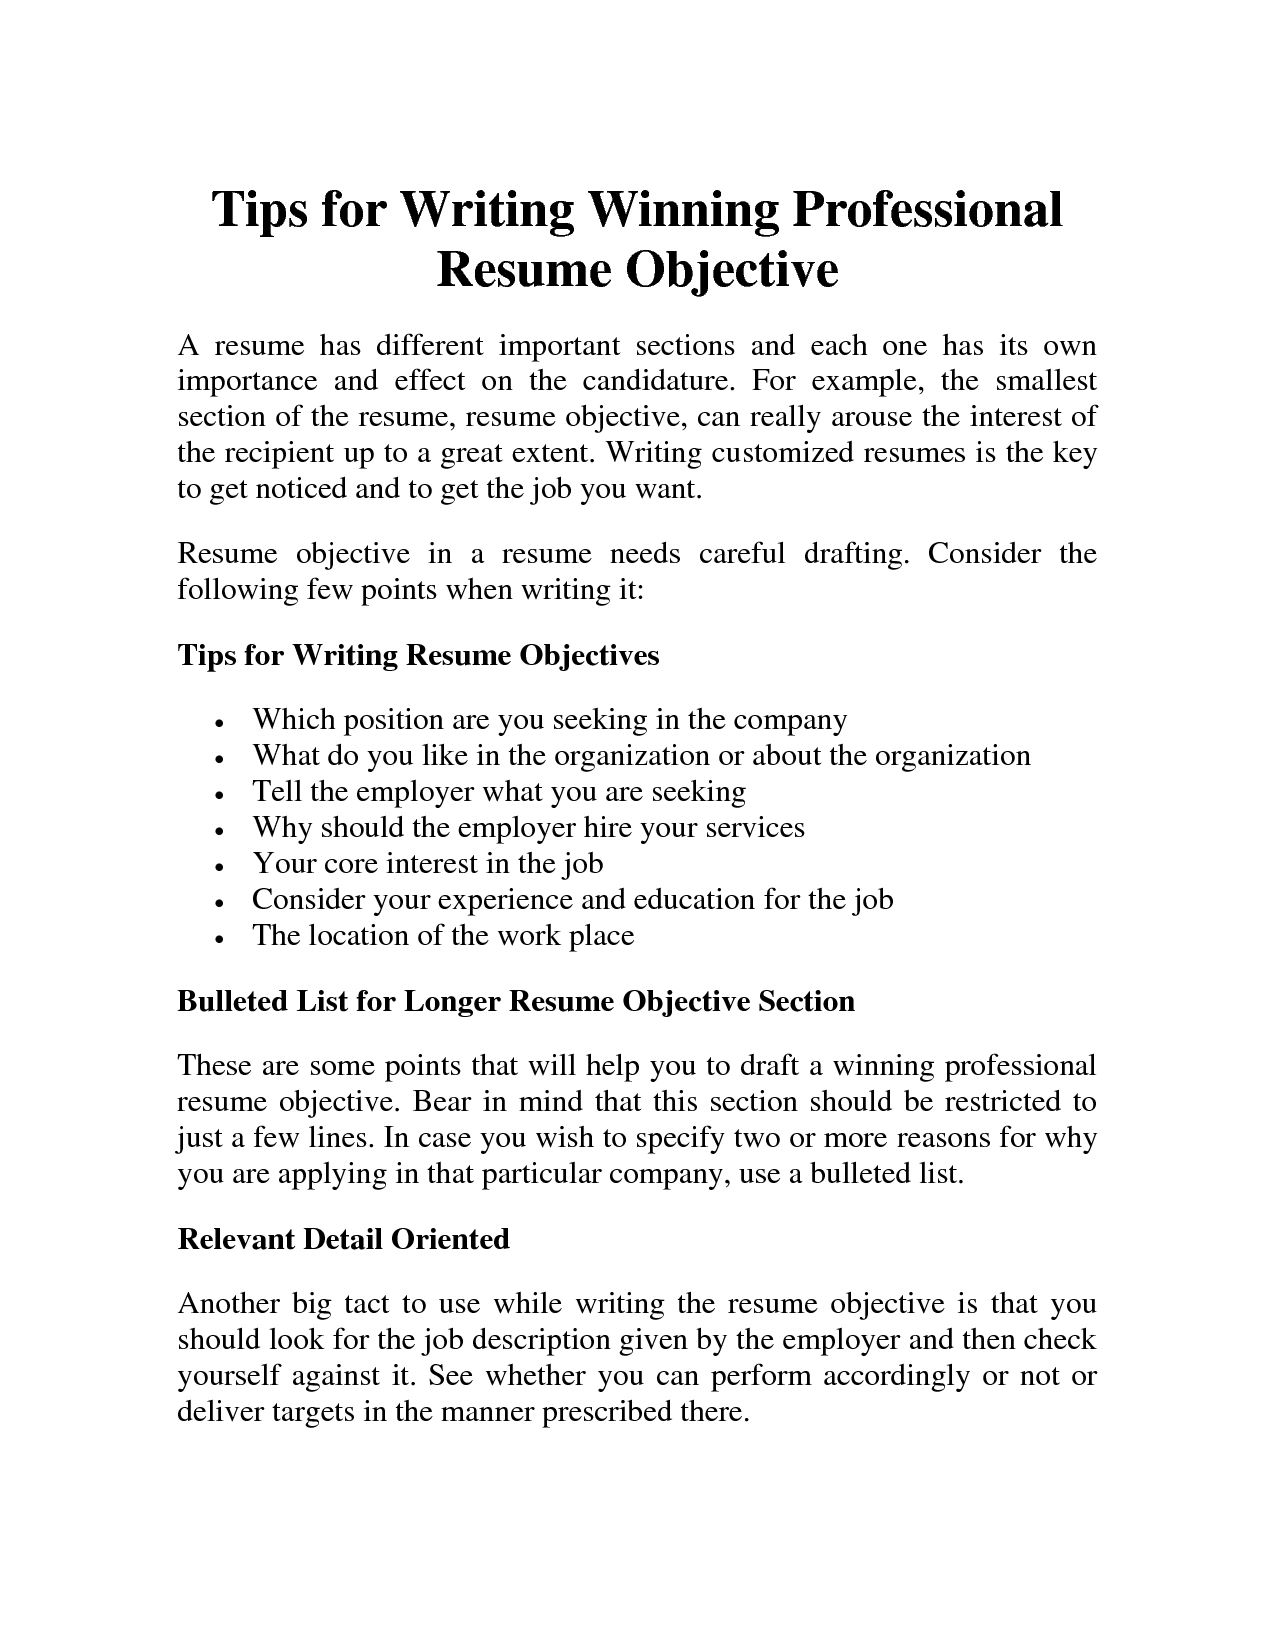 General Objectives For Resumes Professional Resume Objective Samplesprofessional Resume Objective